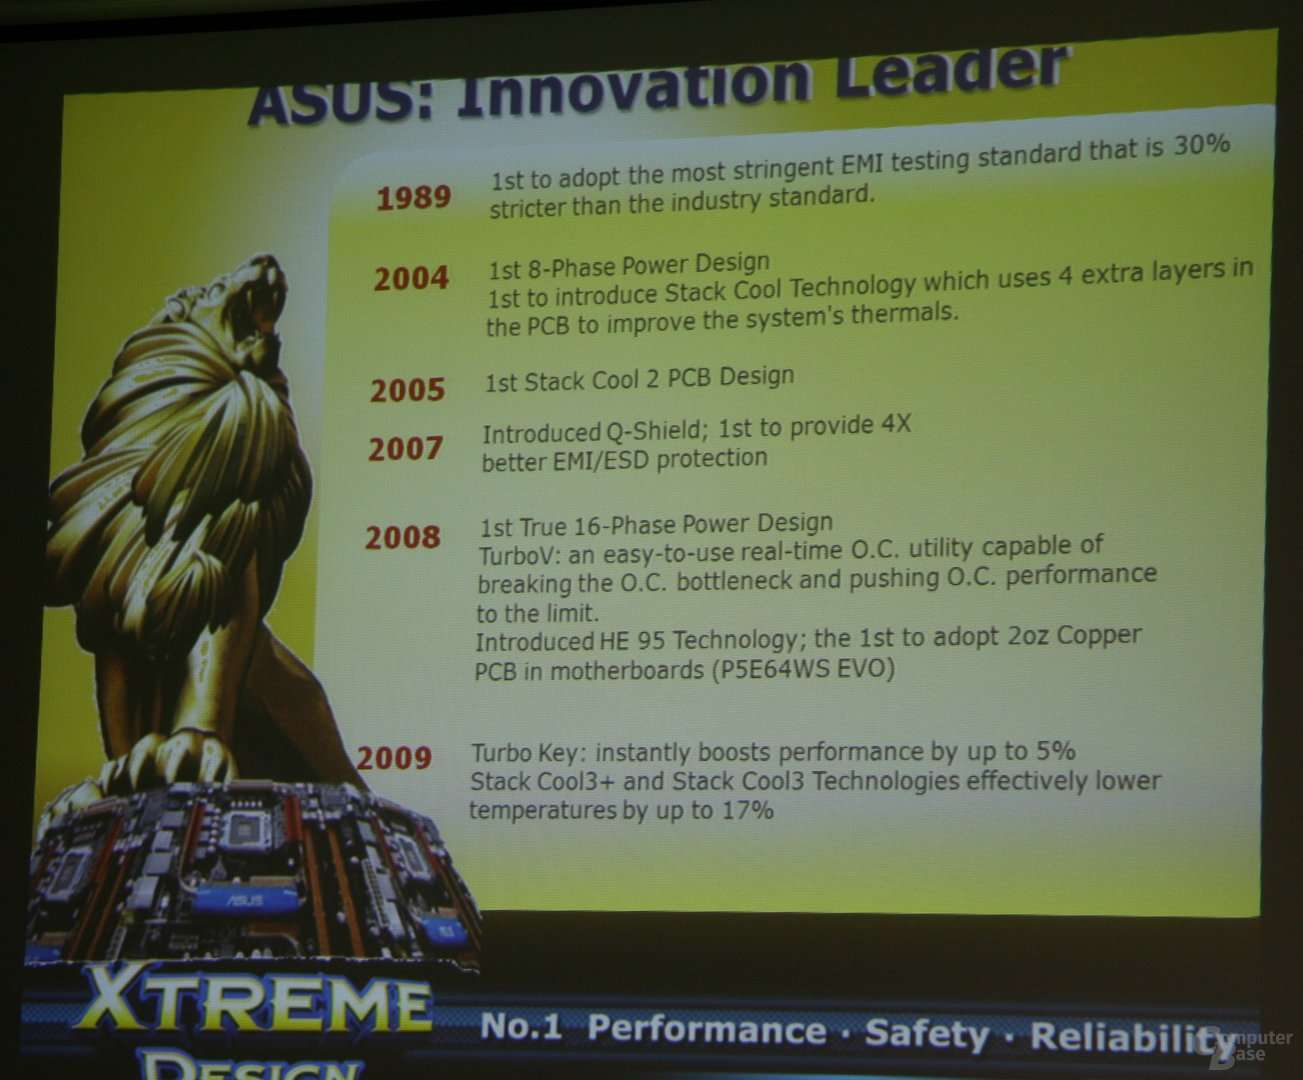 Asus Xtreme Global Summit in London